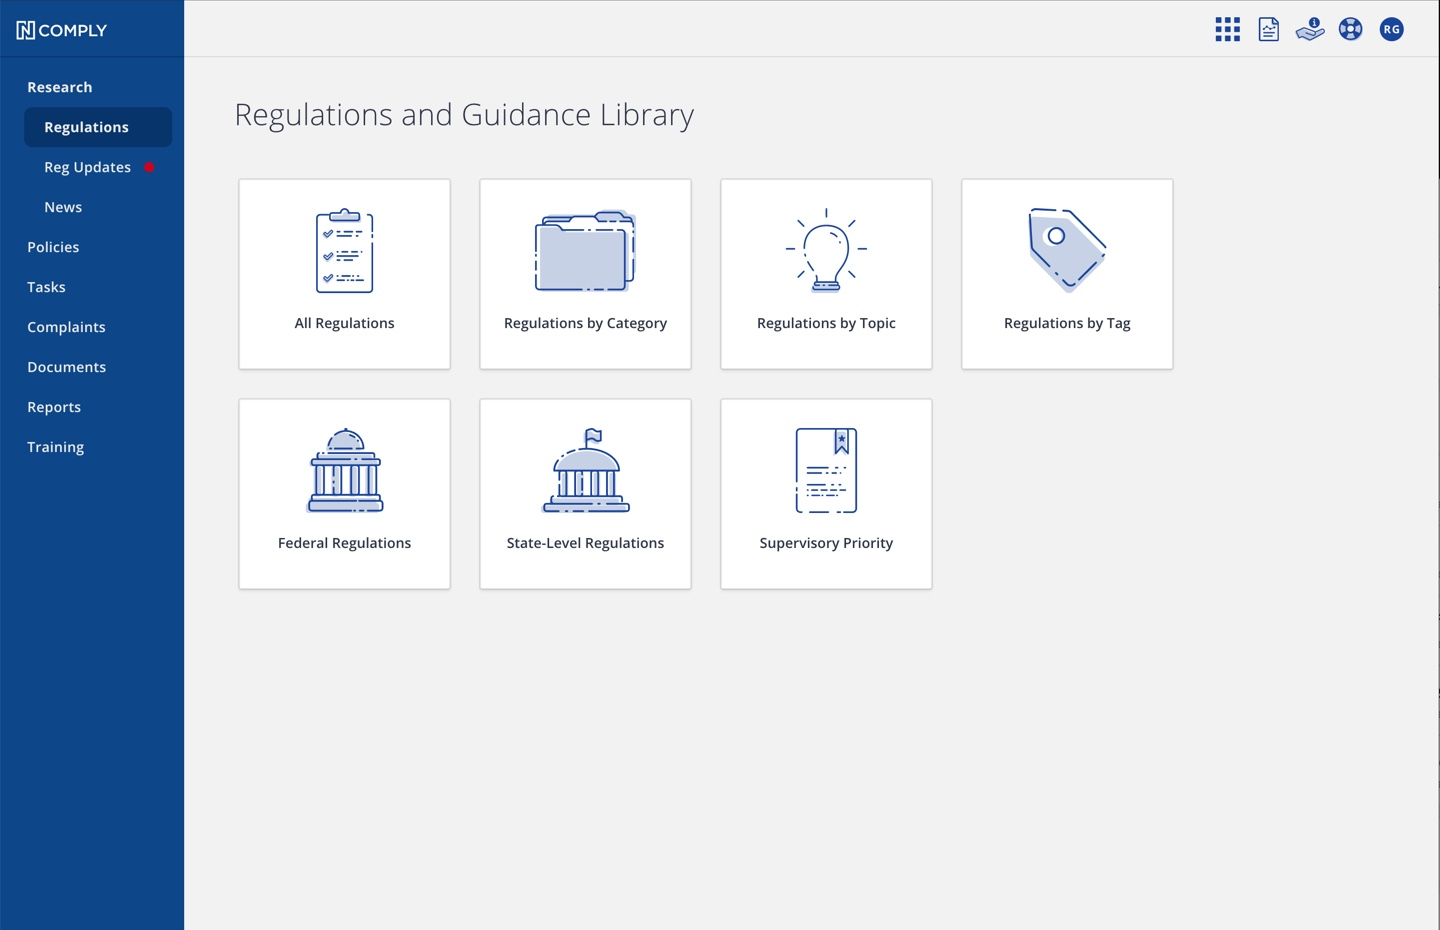 Ncomply Regulations and Guidance Library